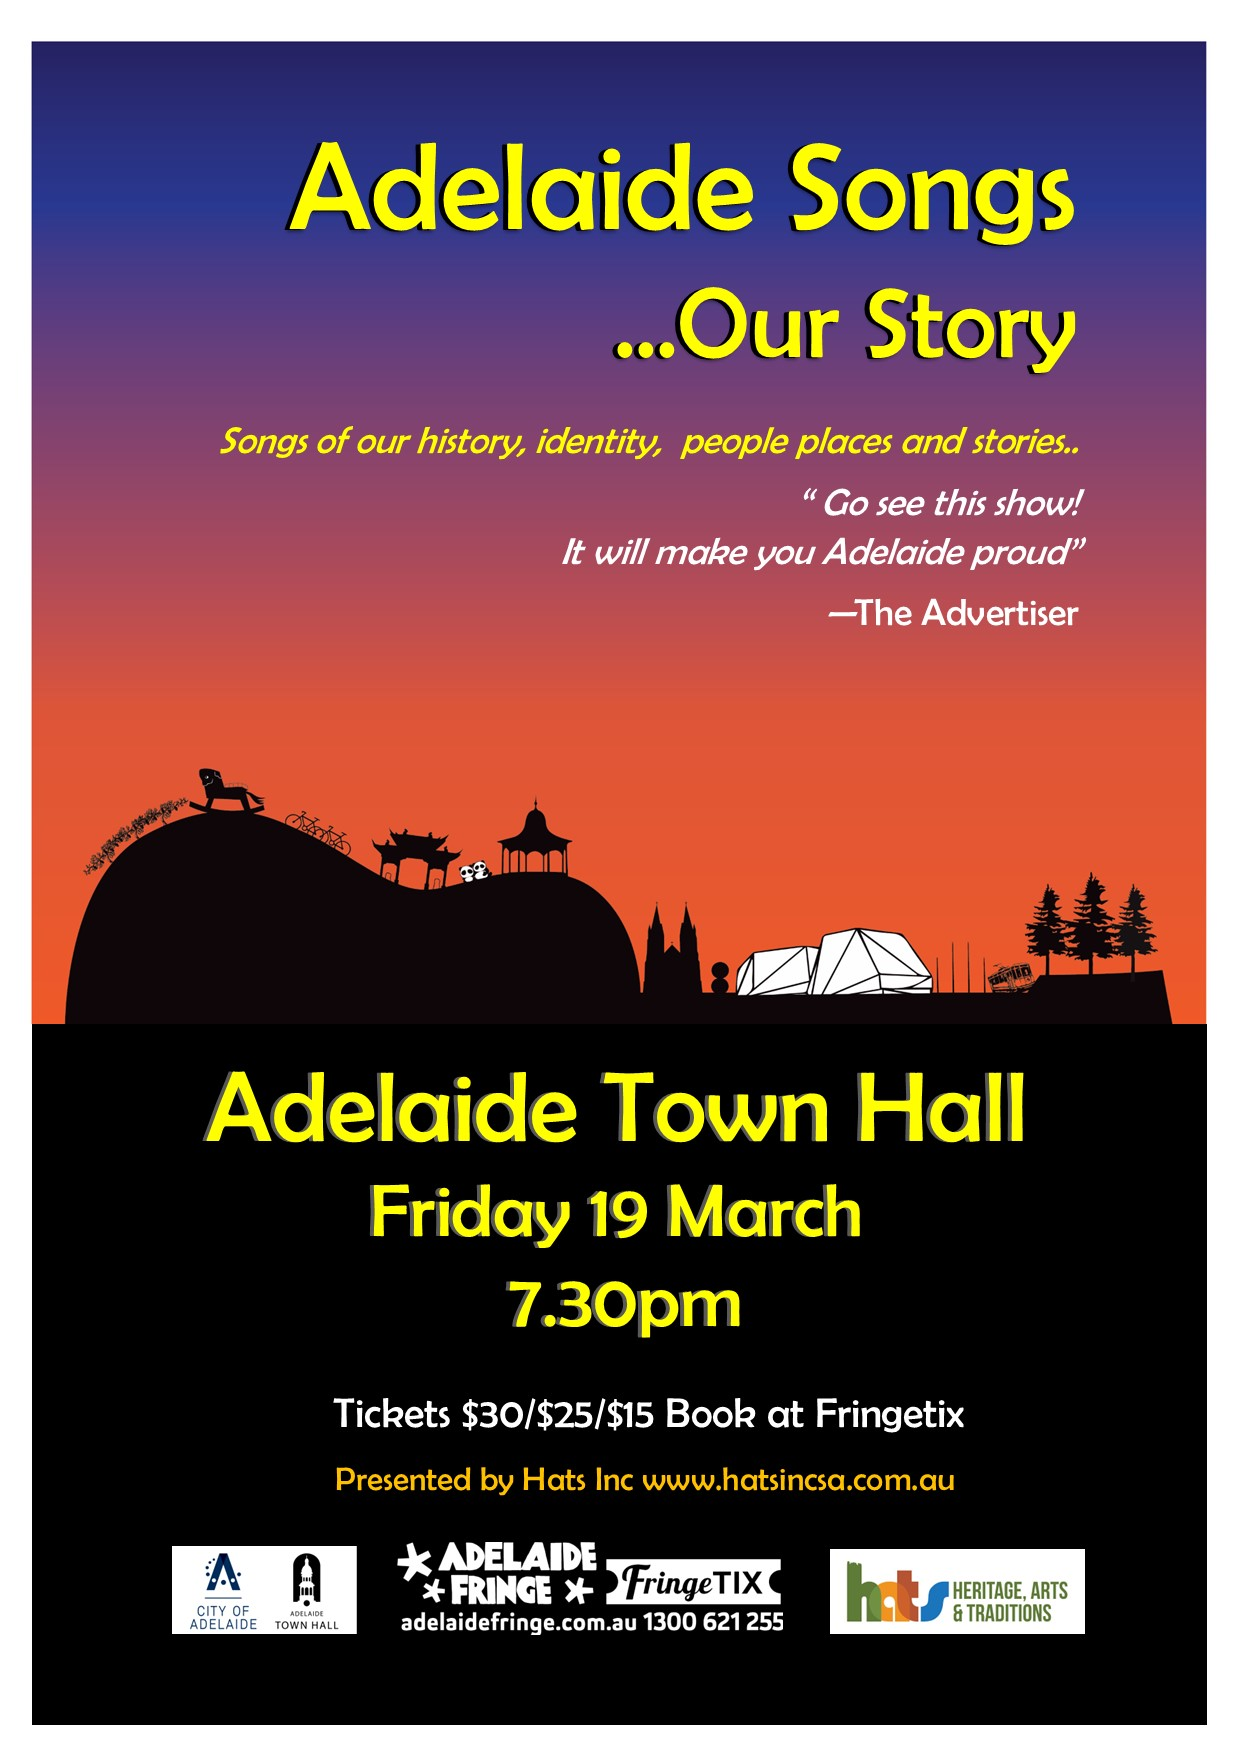 Adelaide Songs – Our Story